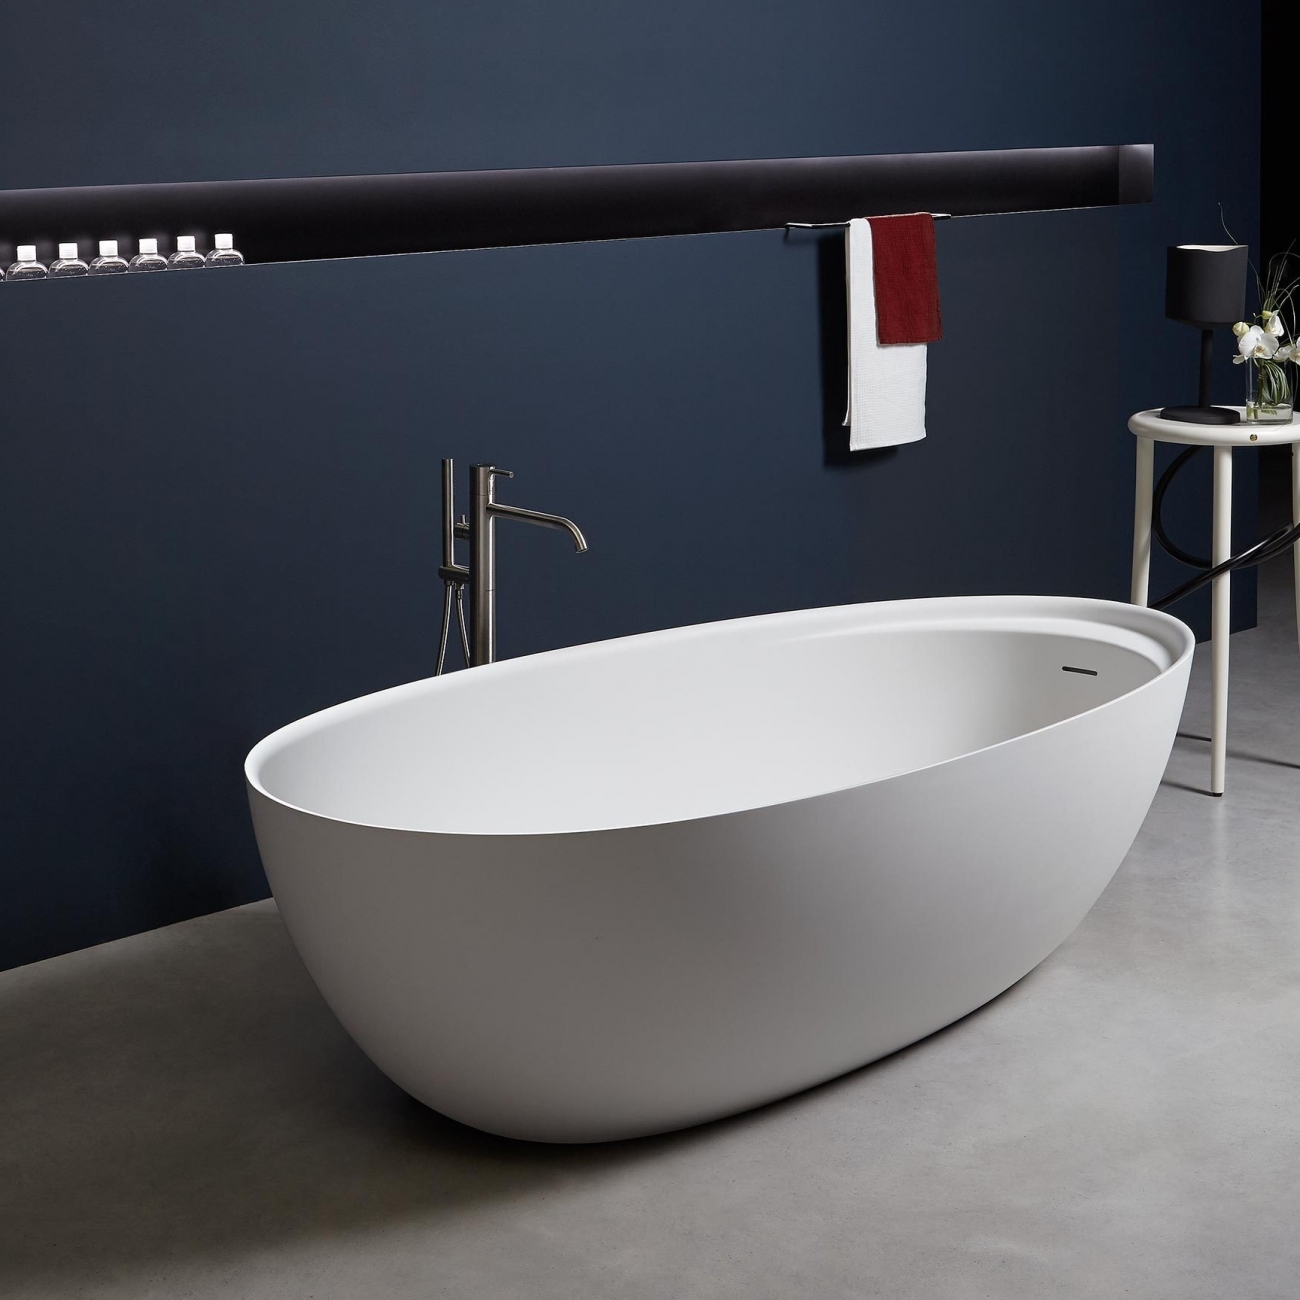 ANTONIO LUPI ECLIPSE OVAL CRISTALPLANT BATHTUB - TattaHome